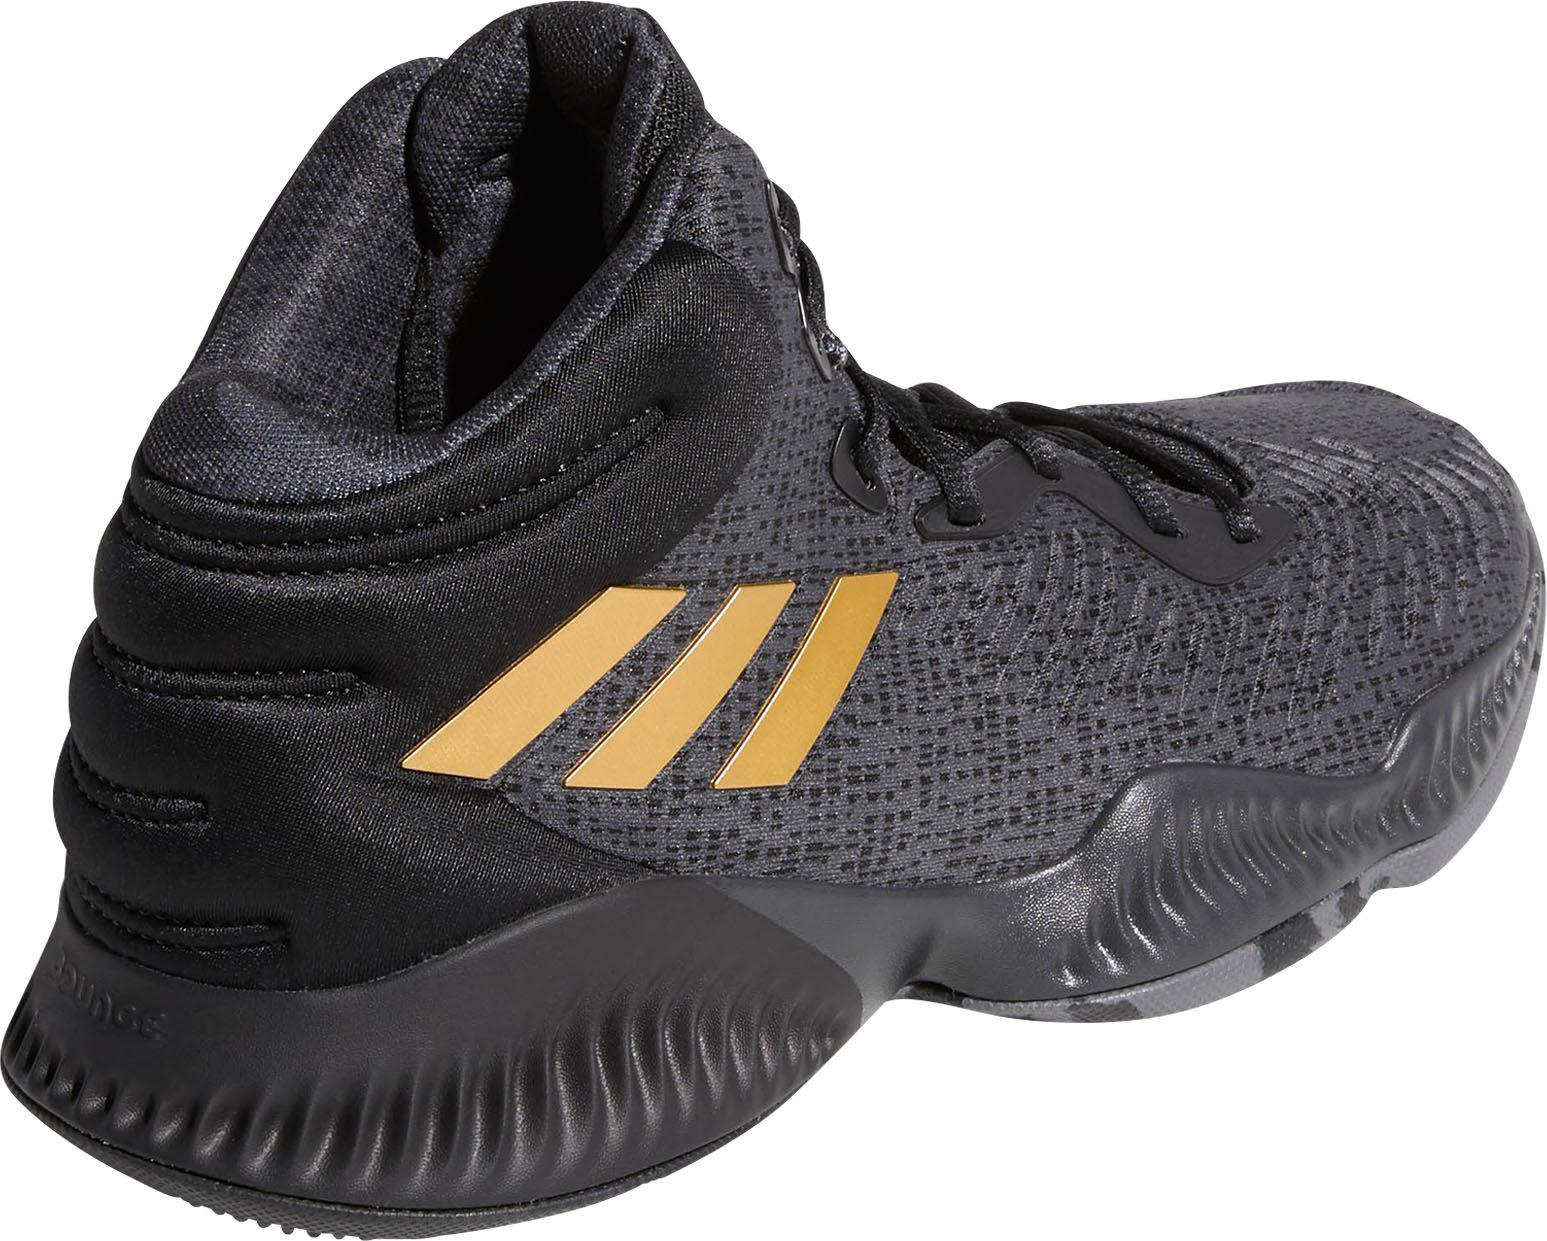 online retailer 3bbe5 d1f59 Adidas - Black Mad Bounce 2018 Basketball Shoes for Men - Lyst